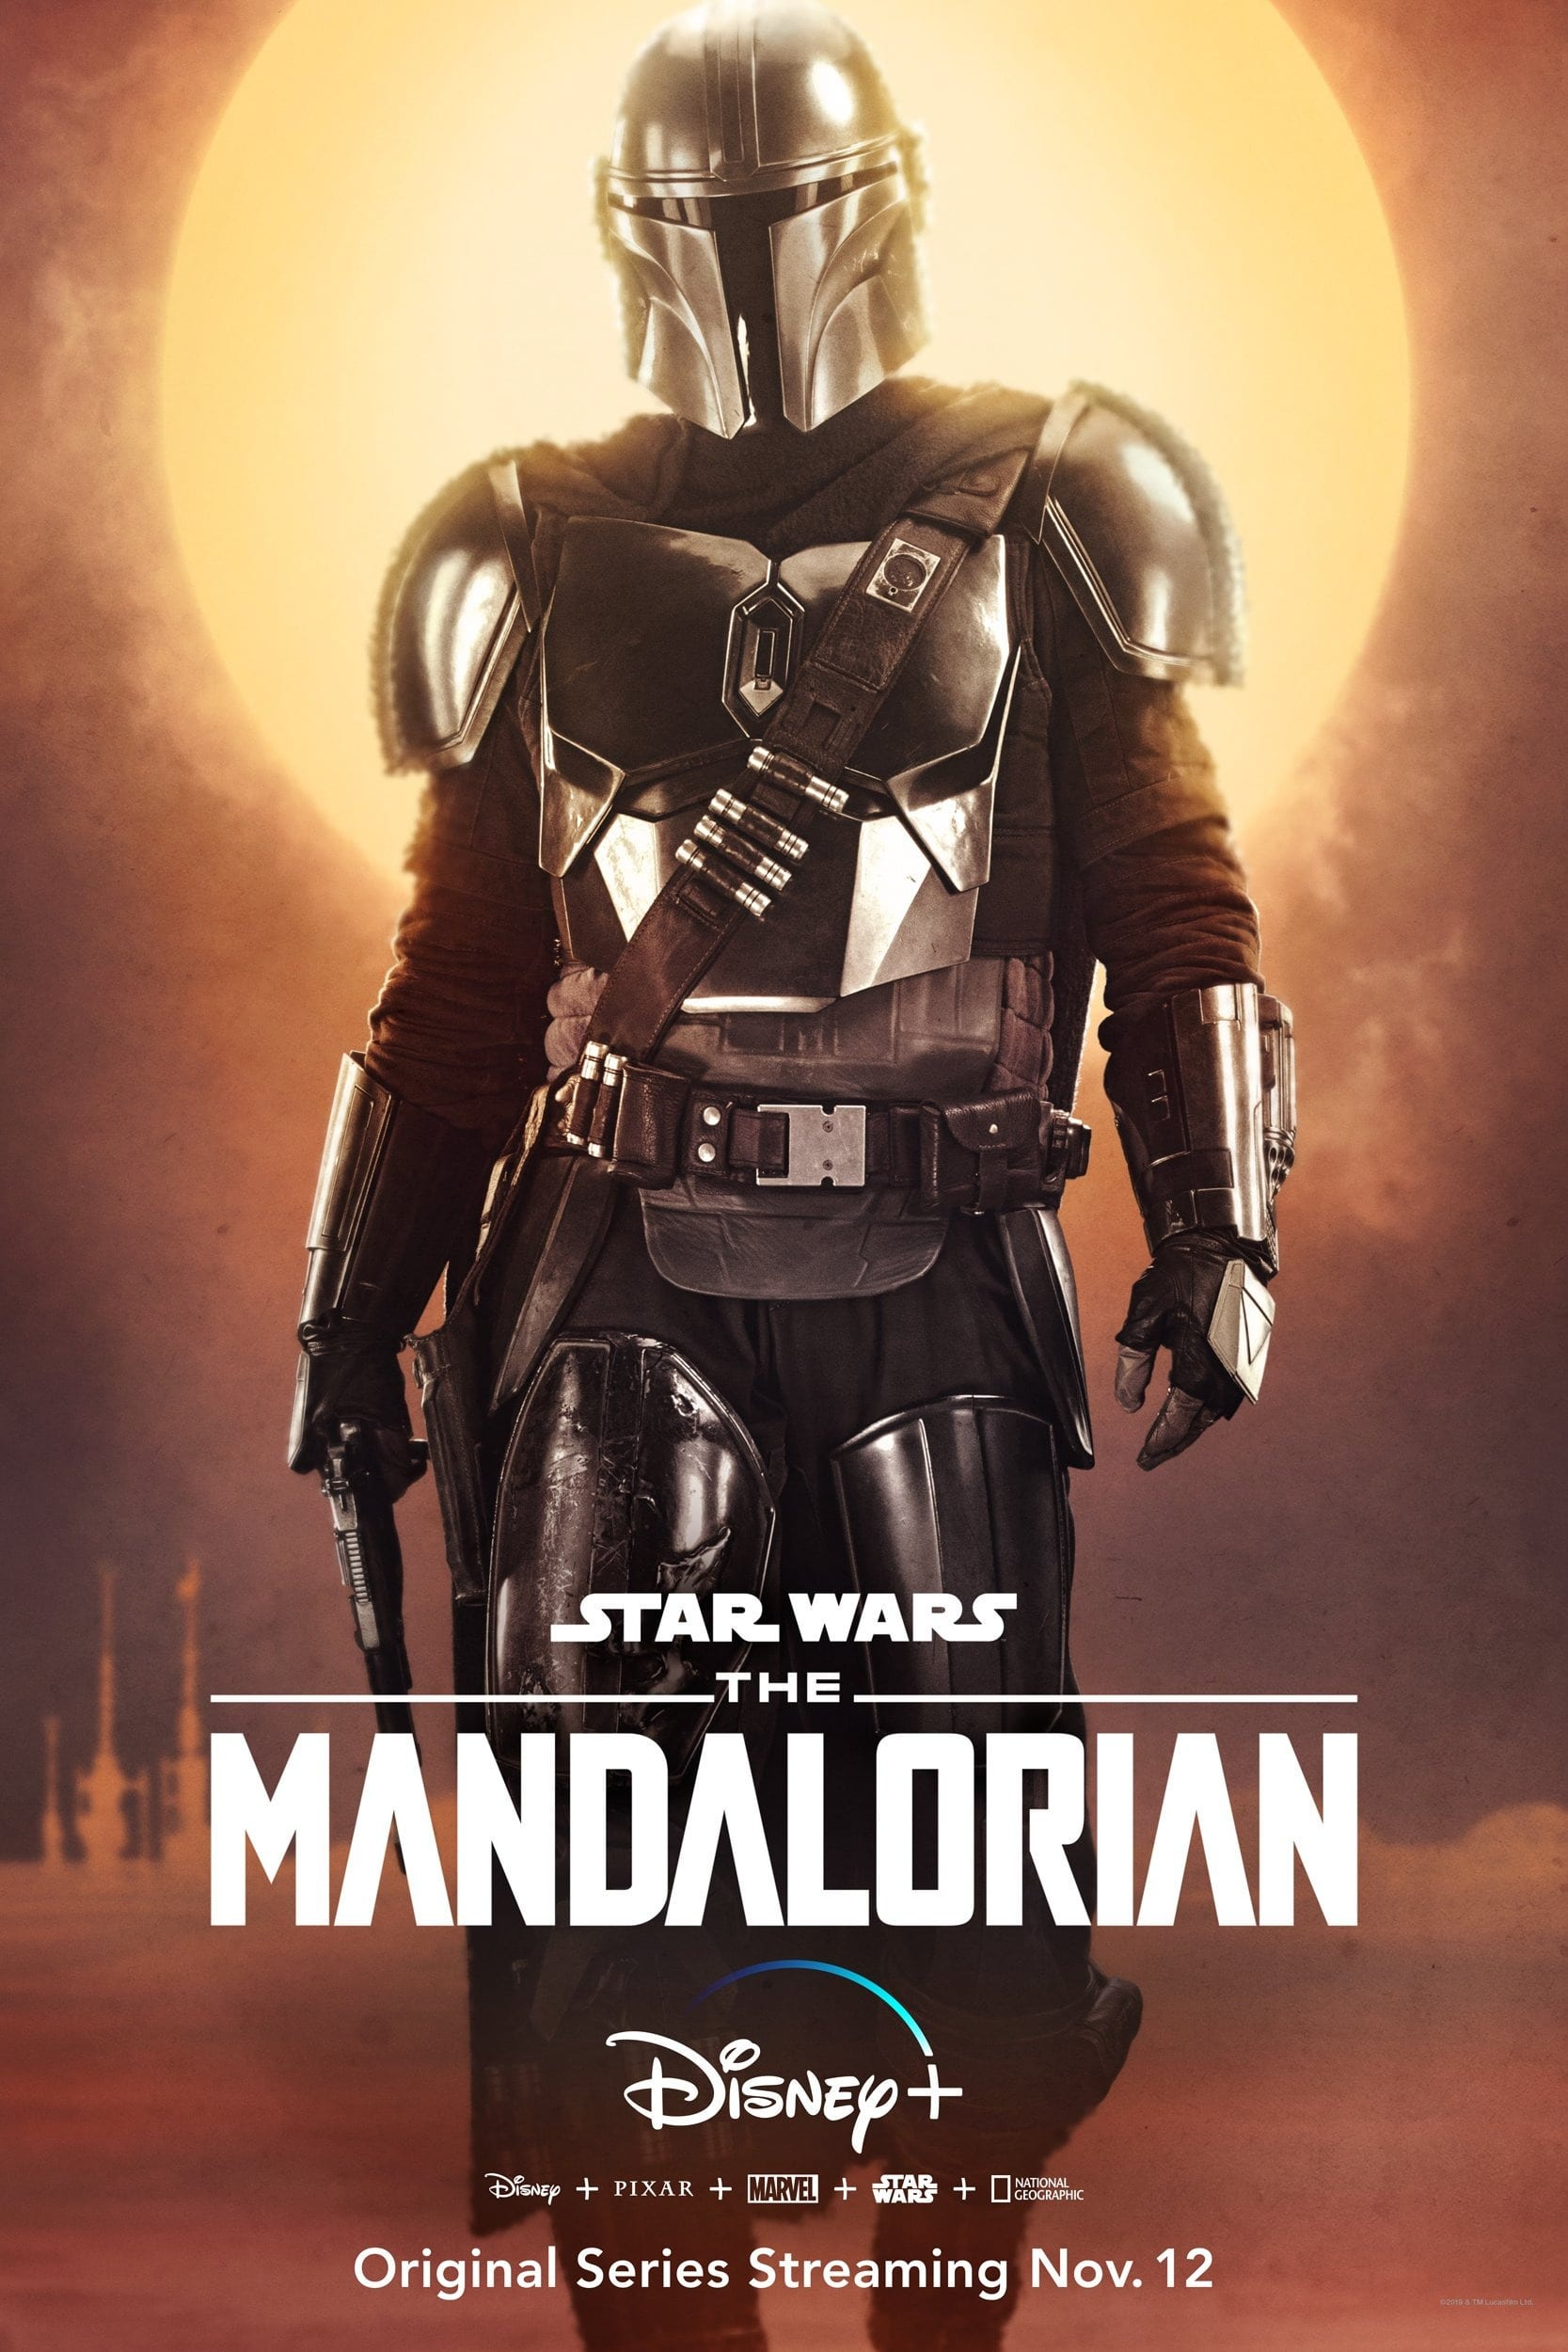 The Mandalorian Character Posters Pedro Pascal as The Mandalorian